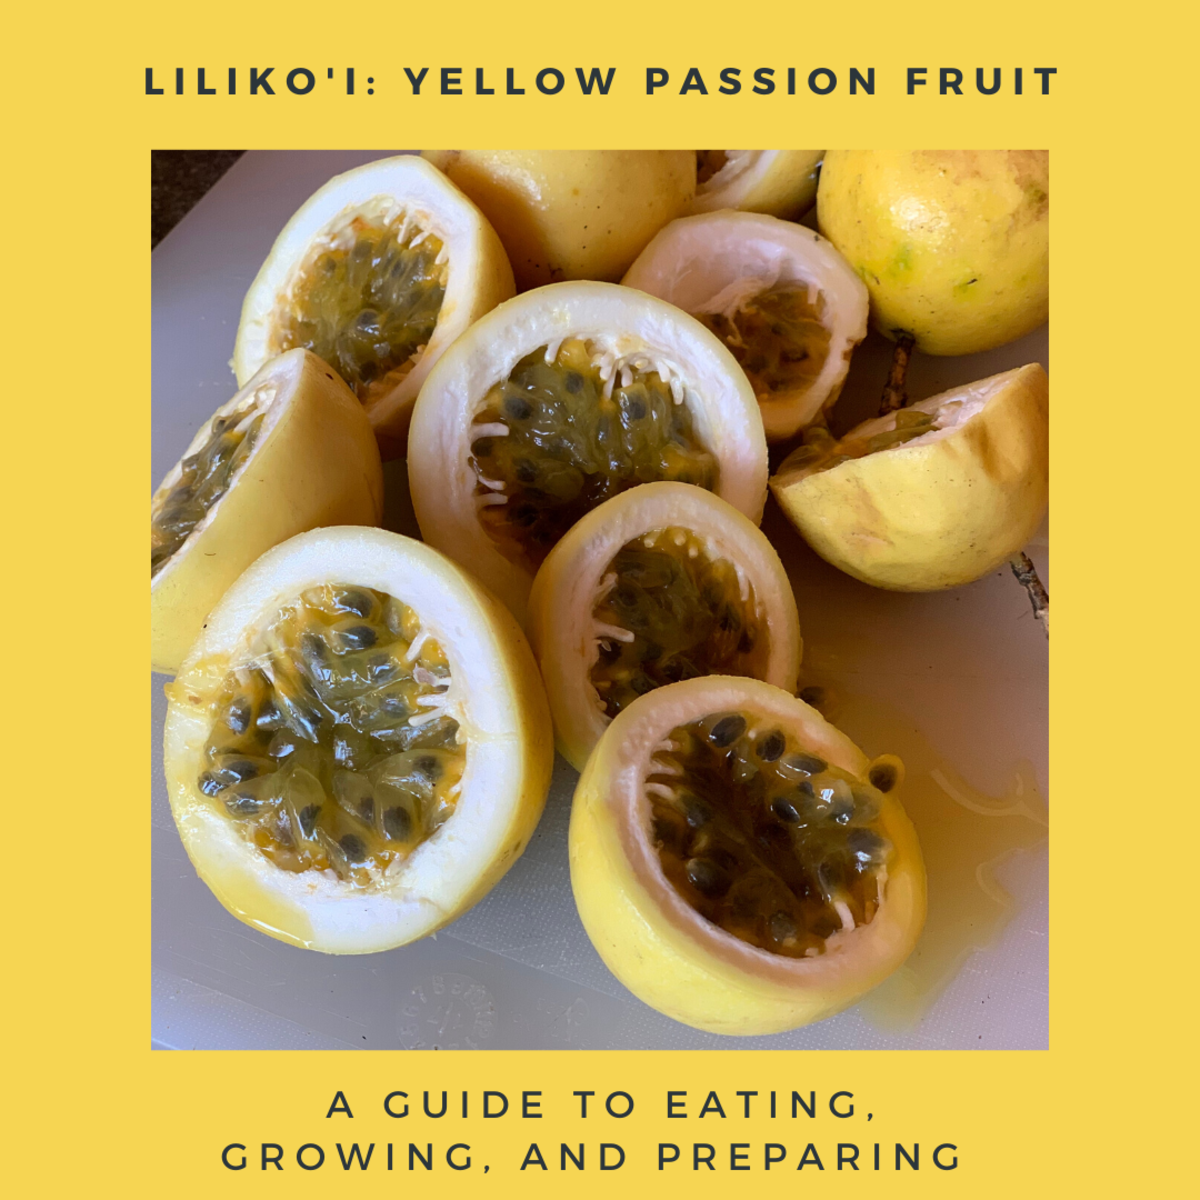 This article will break down how to eat and prepare the wonderful liliko'i fruit, as well as how to grow your own plant.